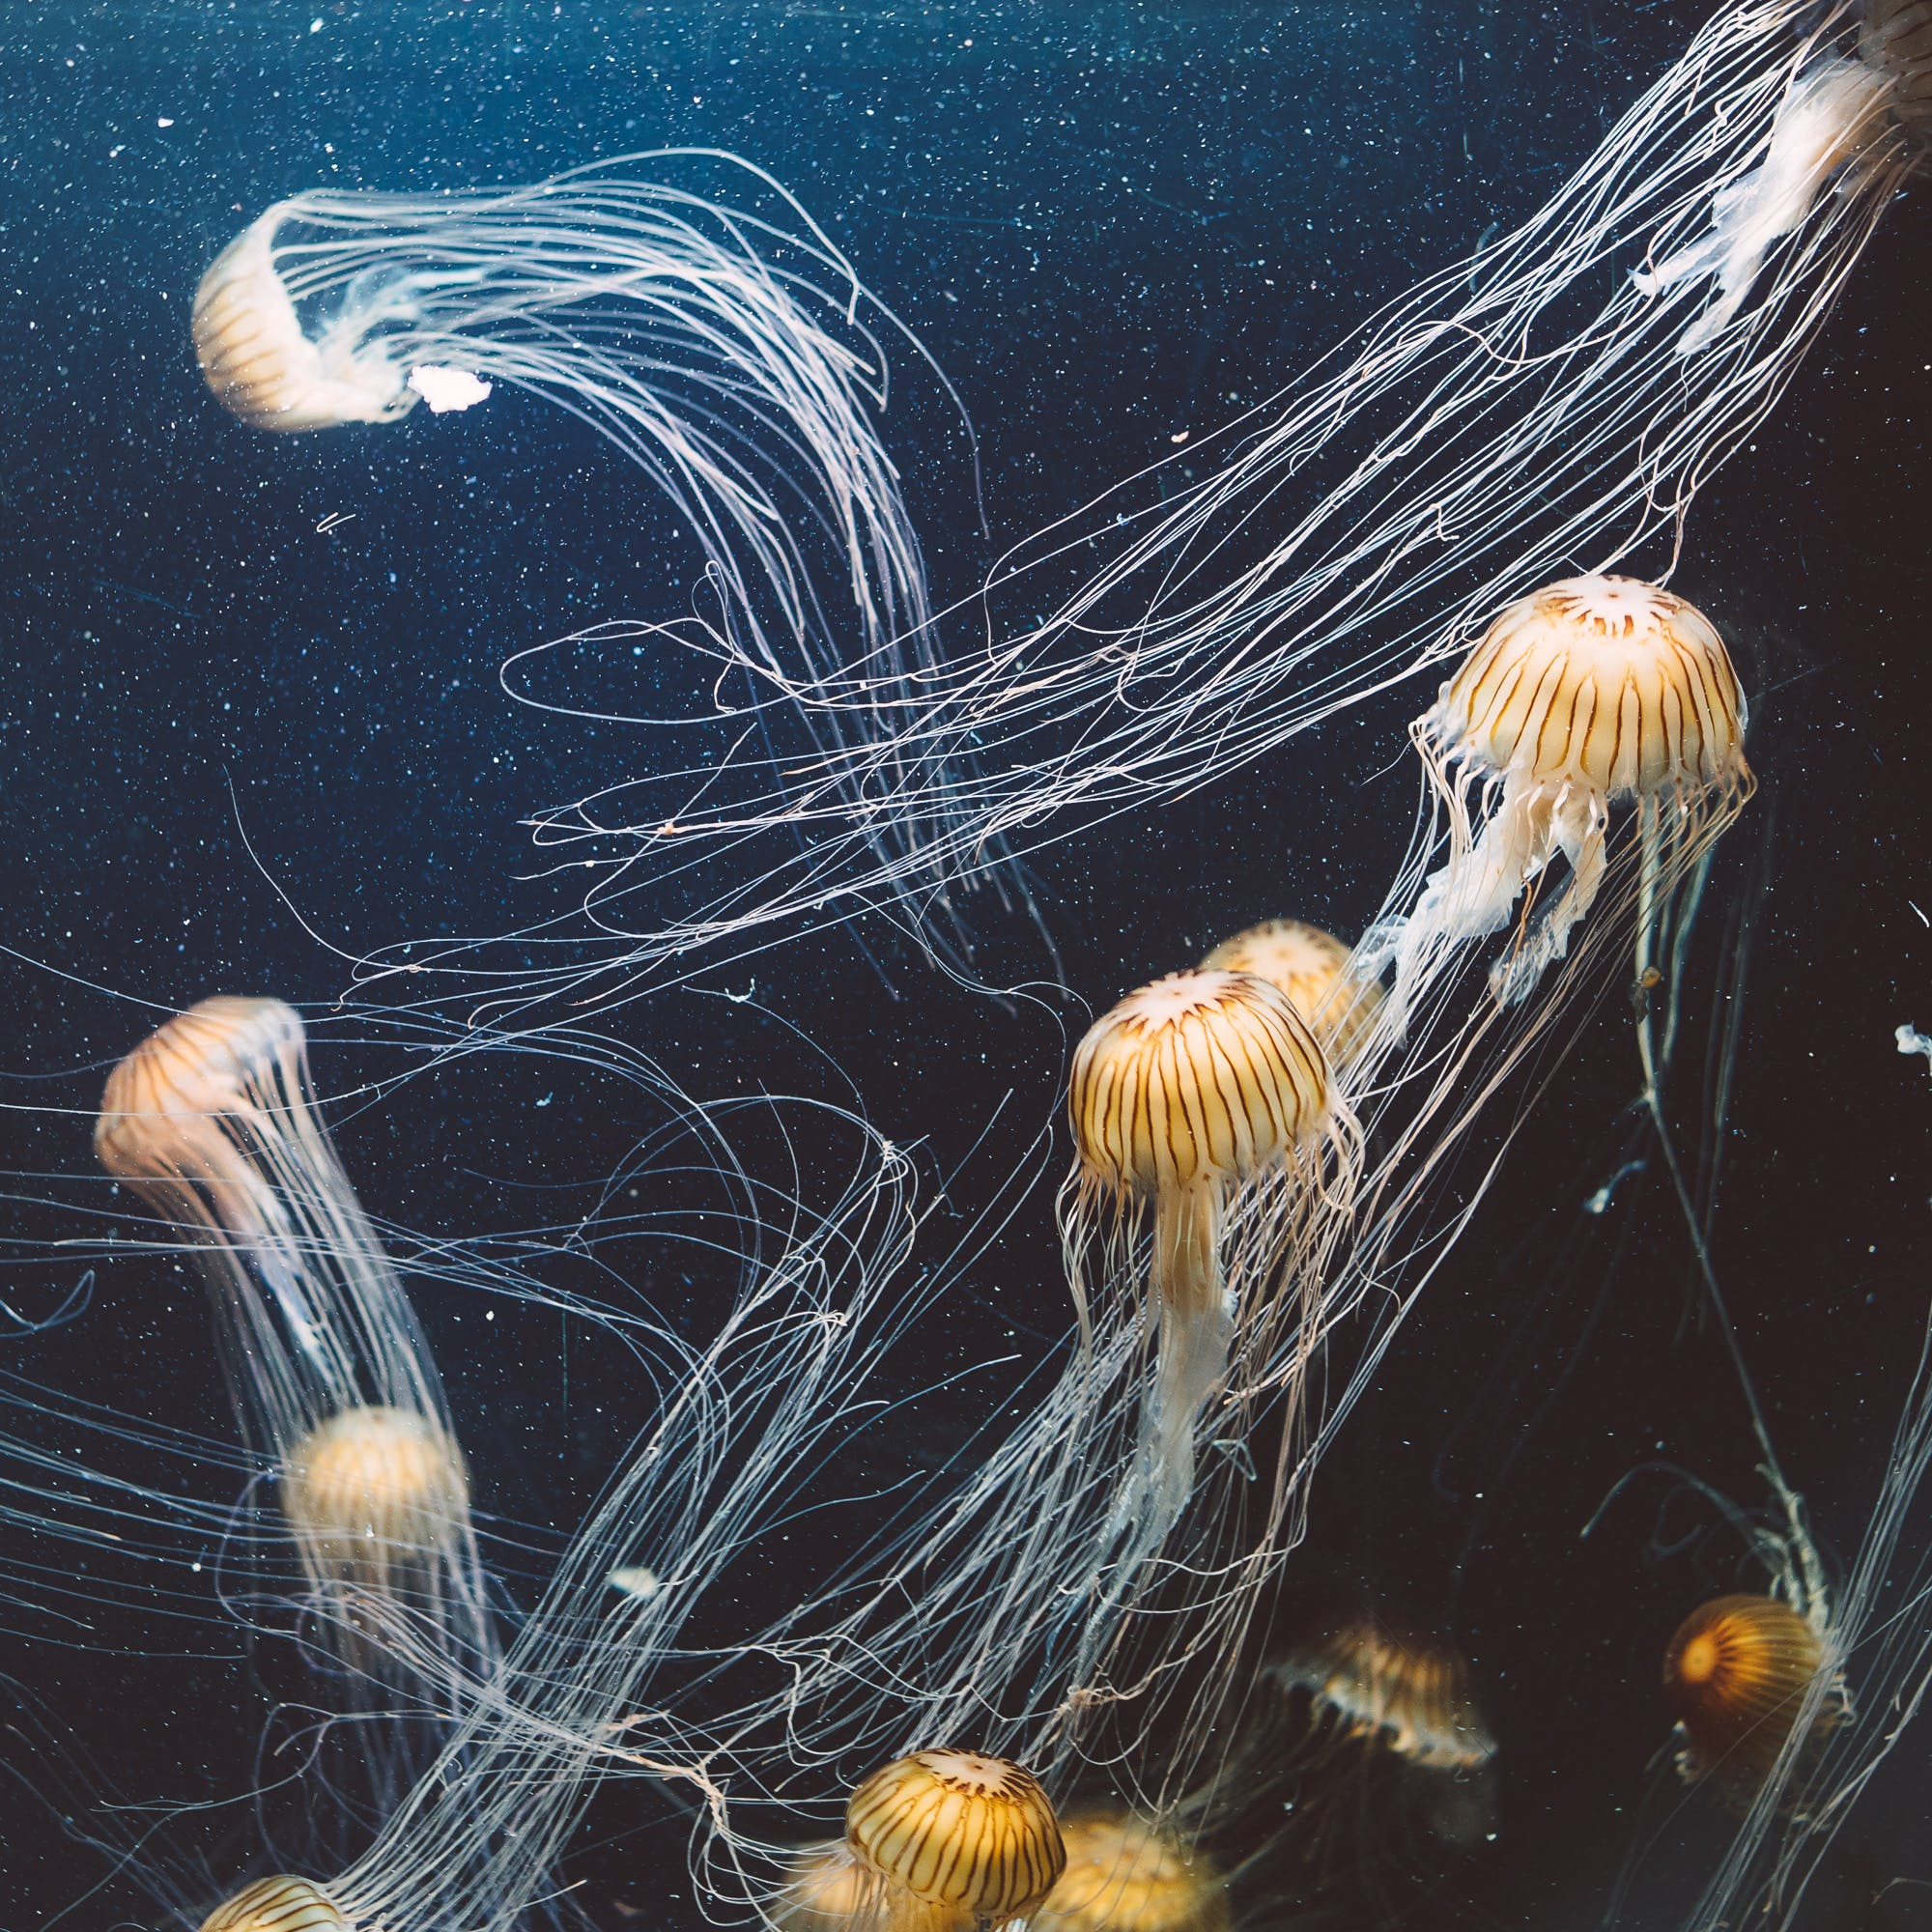 School of Jellyfish Underwater